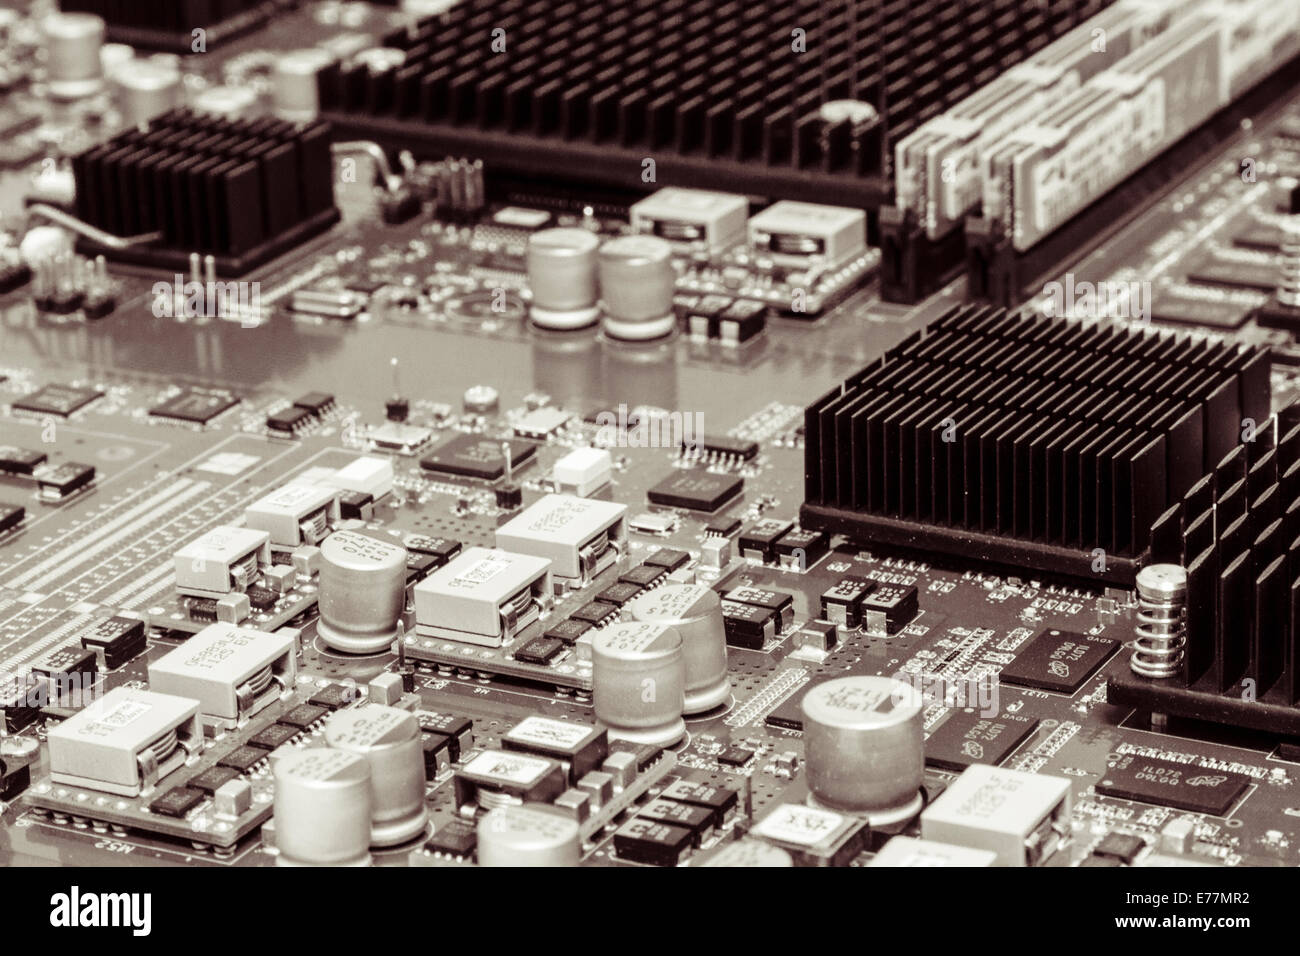 Circuit board of a powerful server computer with chips, capacitors, memory, and heat sinks visible - Stock Image